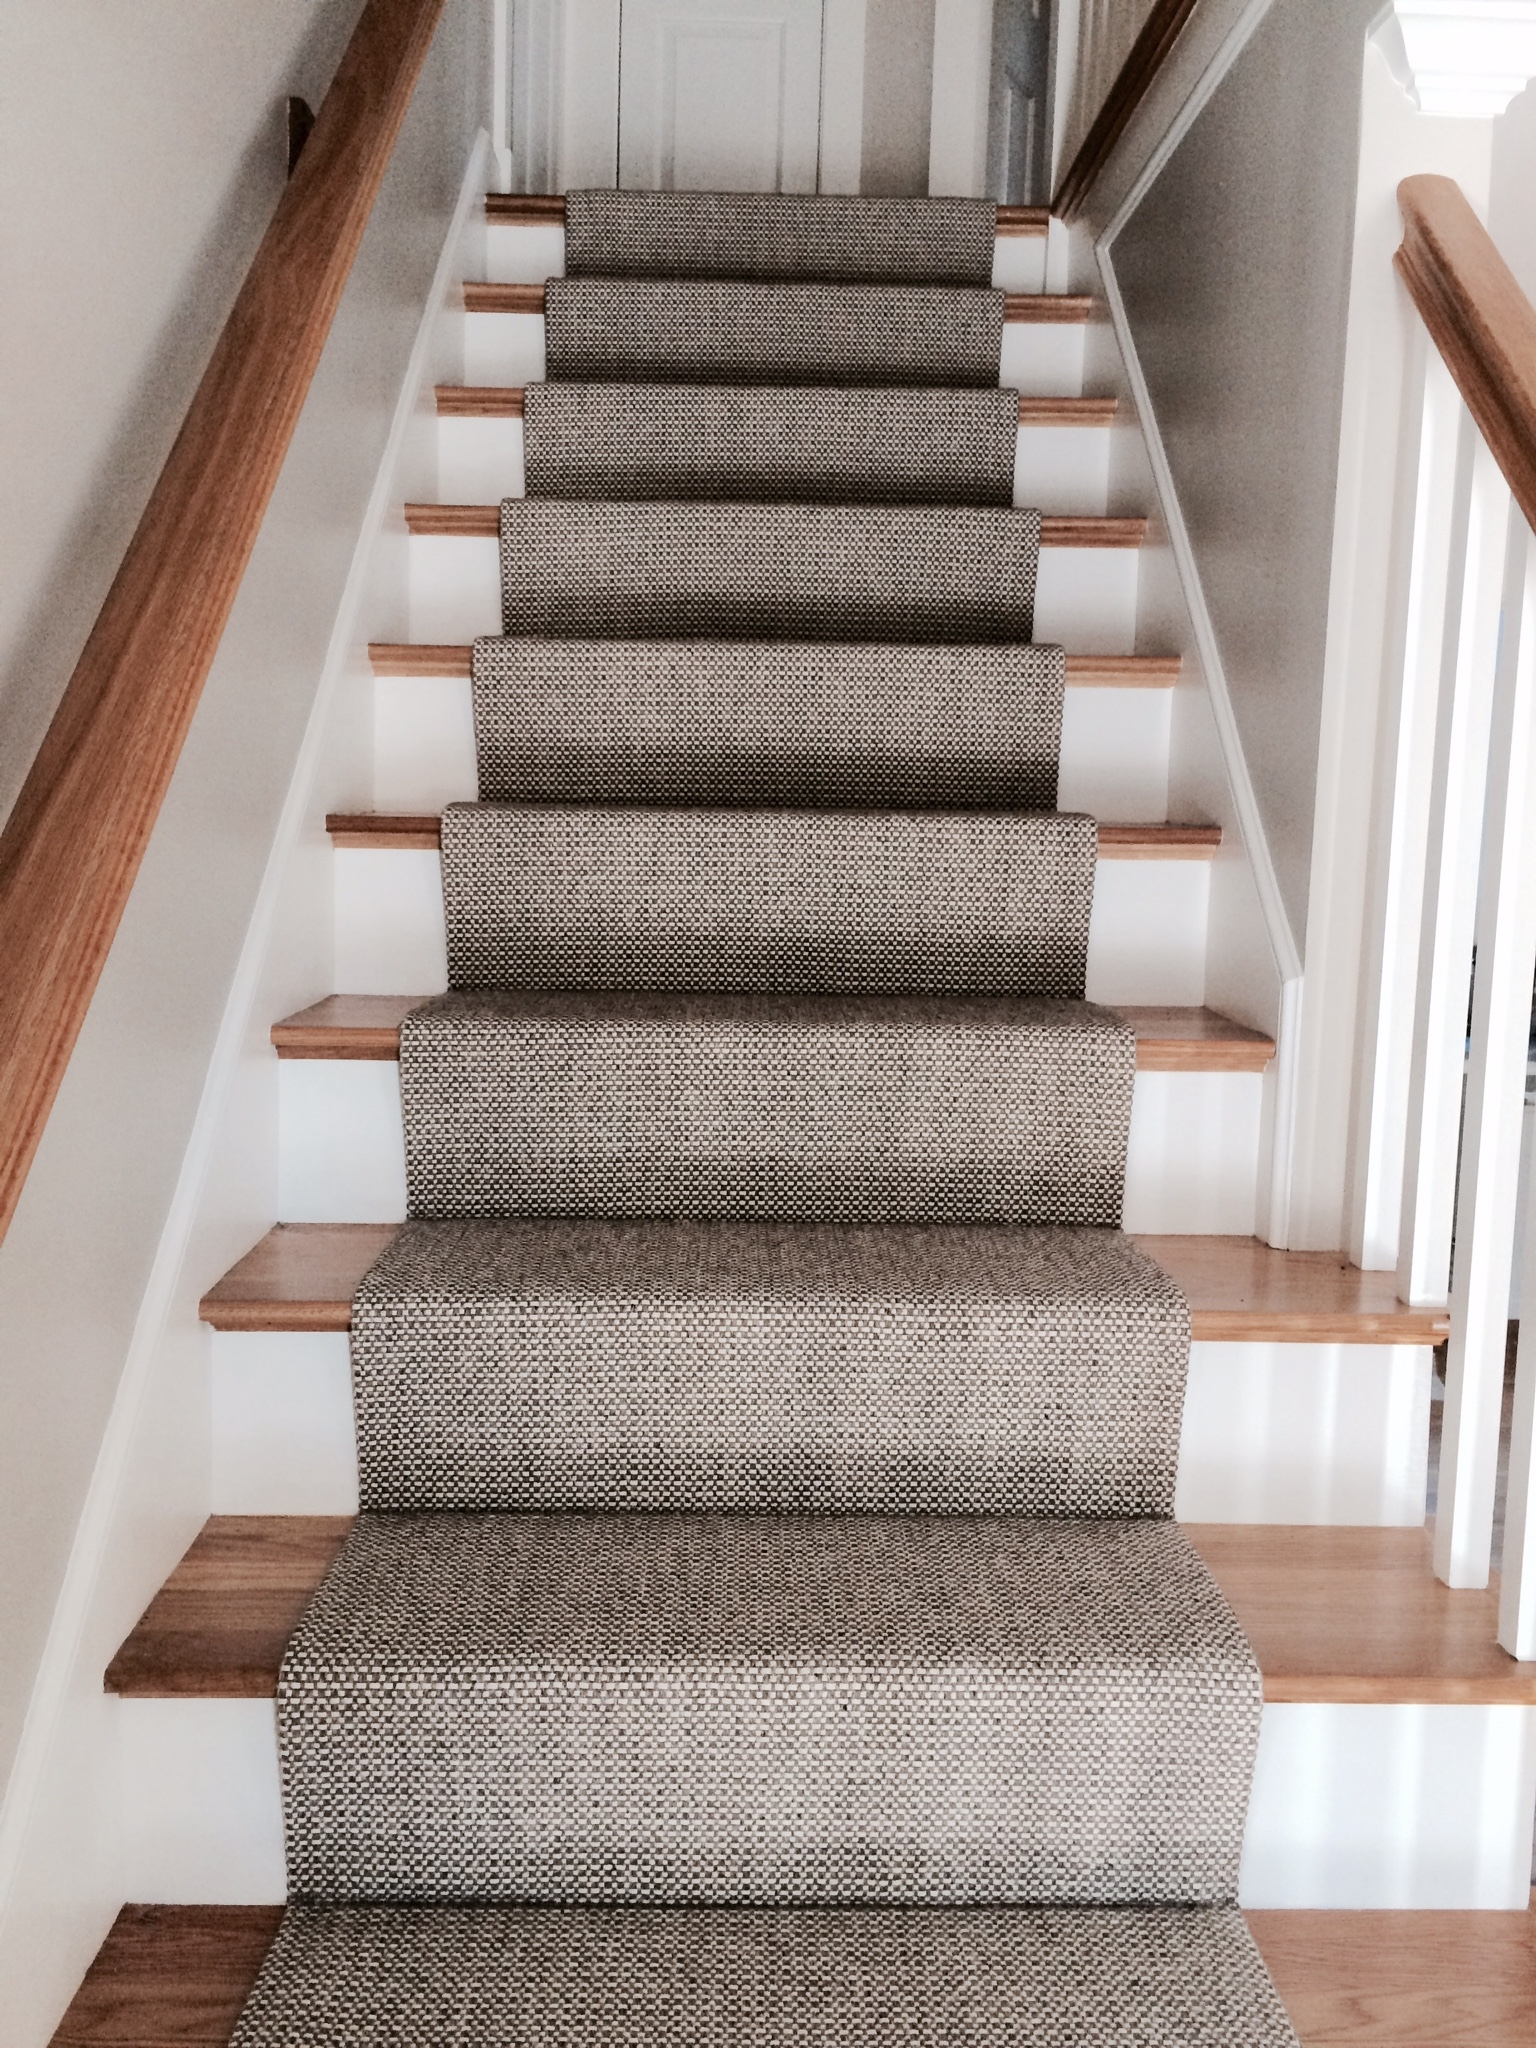 Merida Flat Woven Wool Stair Runner With Regard To Wool Stair Rug Treads (Image 7 of 15)